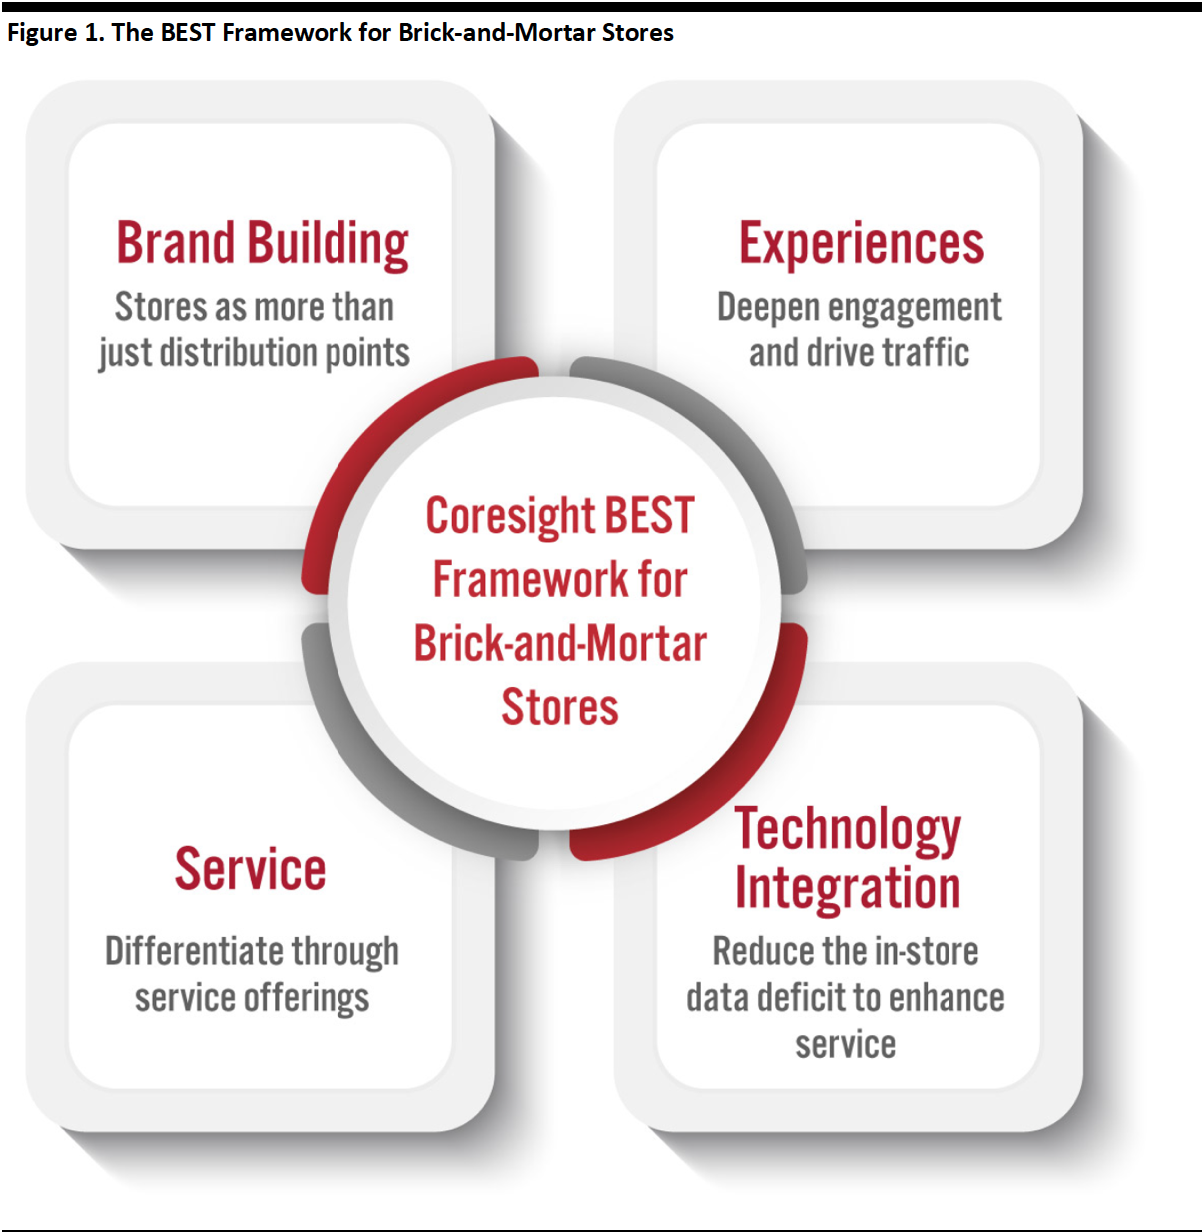 Figure 1. The BEST Framework for Brick-and-Mortar Stores